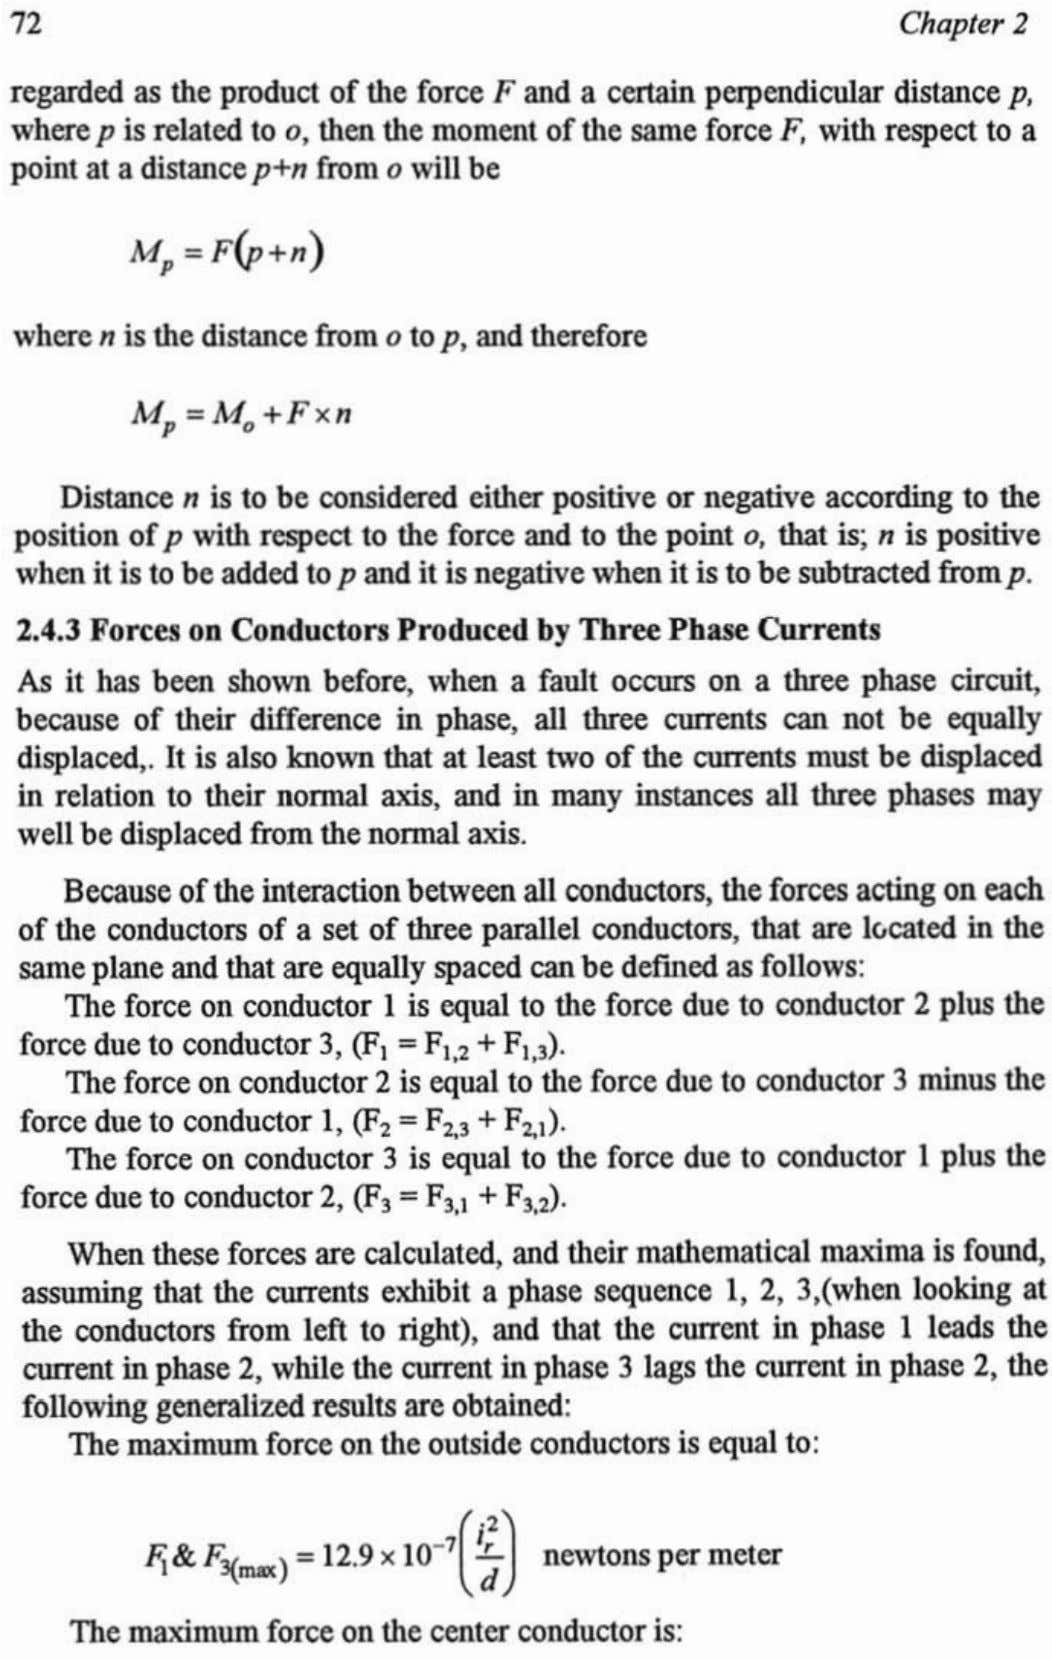 where p is related to point at a distancep+n from will be where n is